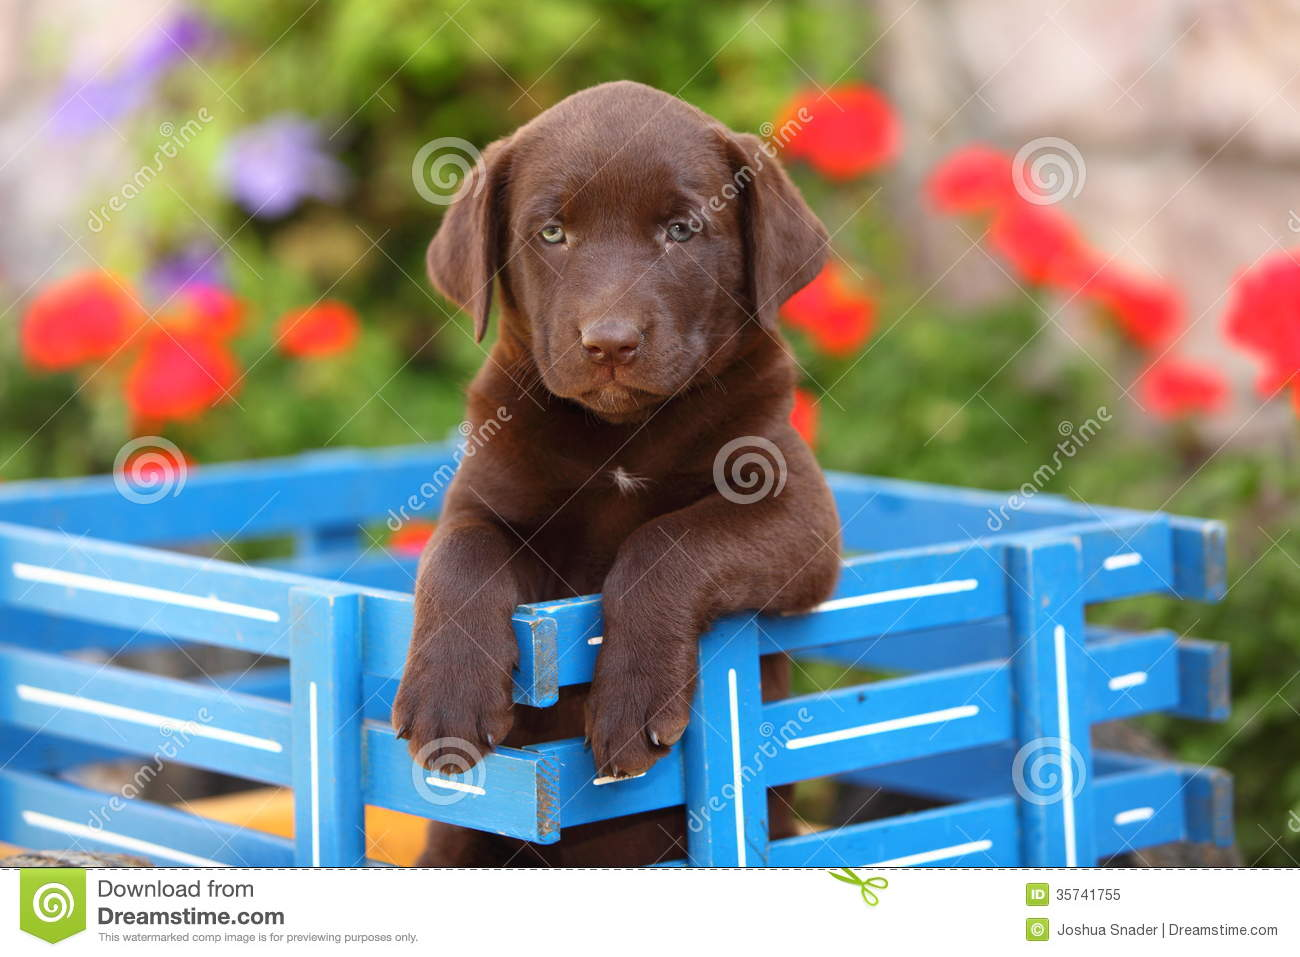 ... Retriever Sitting In Wagon Royalty Free Stock Photo - Image: 35741755